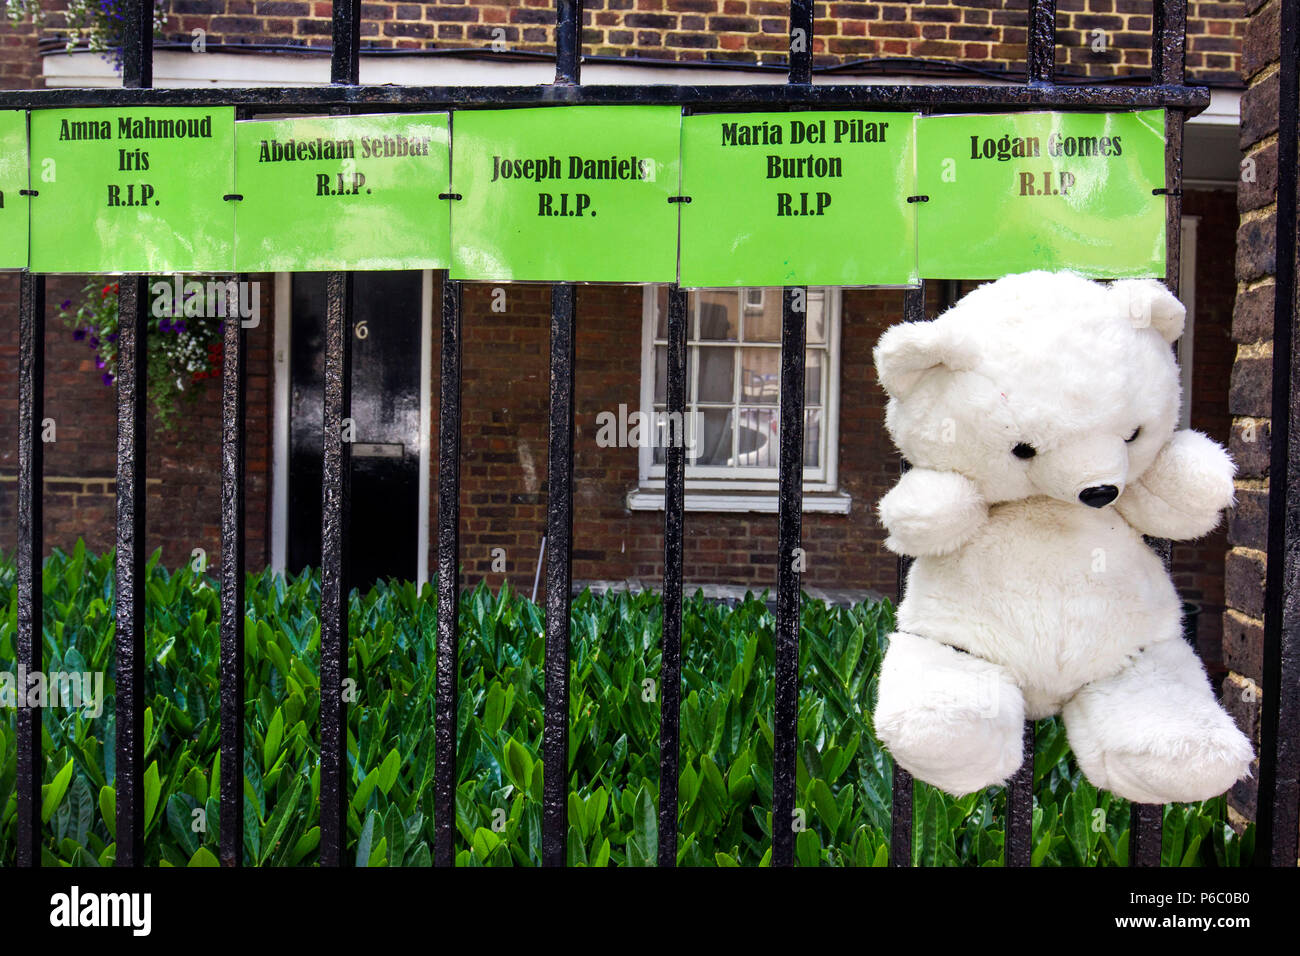 The first anniversary of the 24-storey Grenfell Tower block of public housing flats fire which claimed 72 lives. Banners and signs can be found in the surrounding area acting as memorials and questioning why this happened,  South Kensington, London, UK, 14th June 2018. - Stock Image